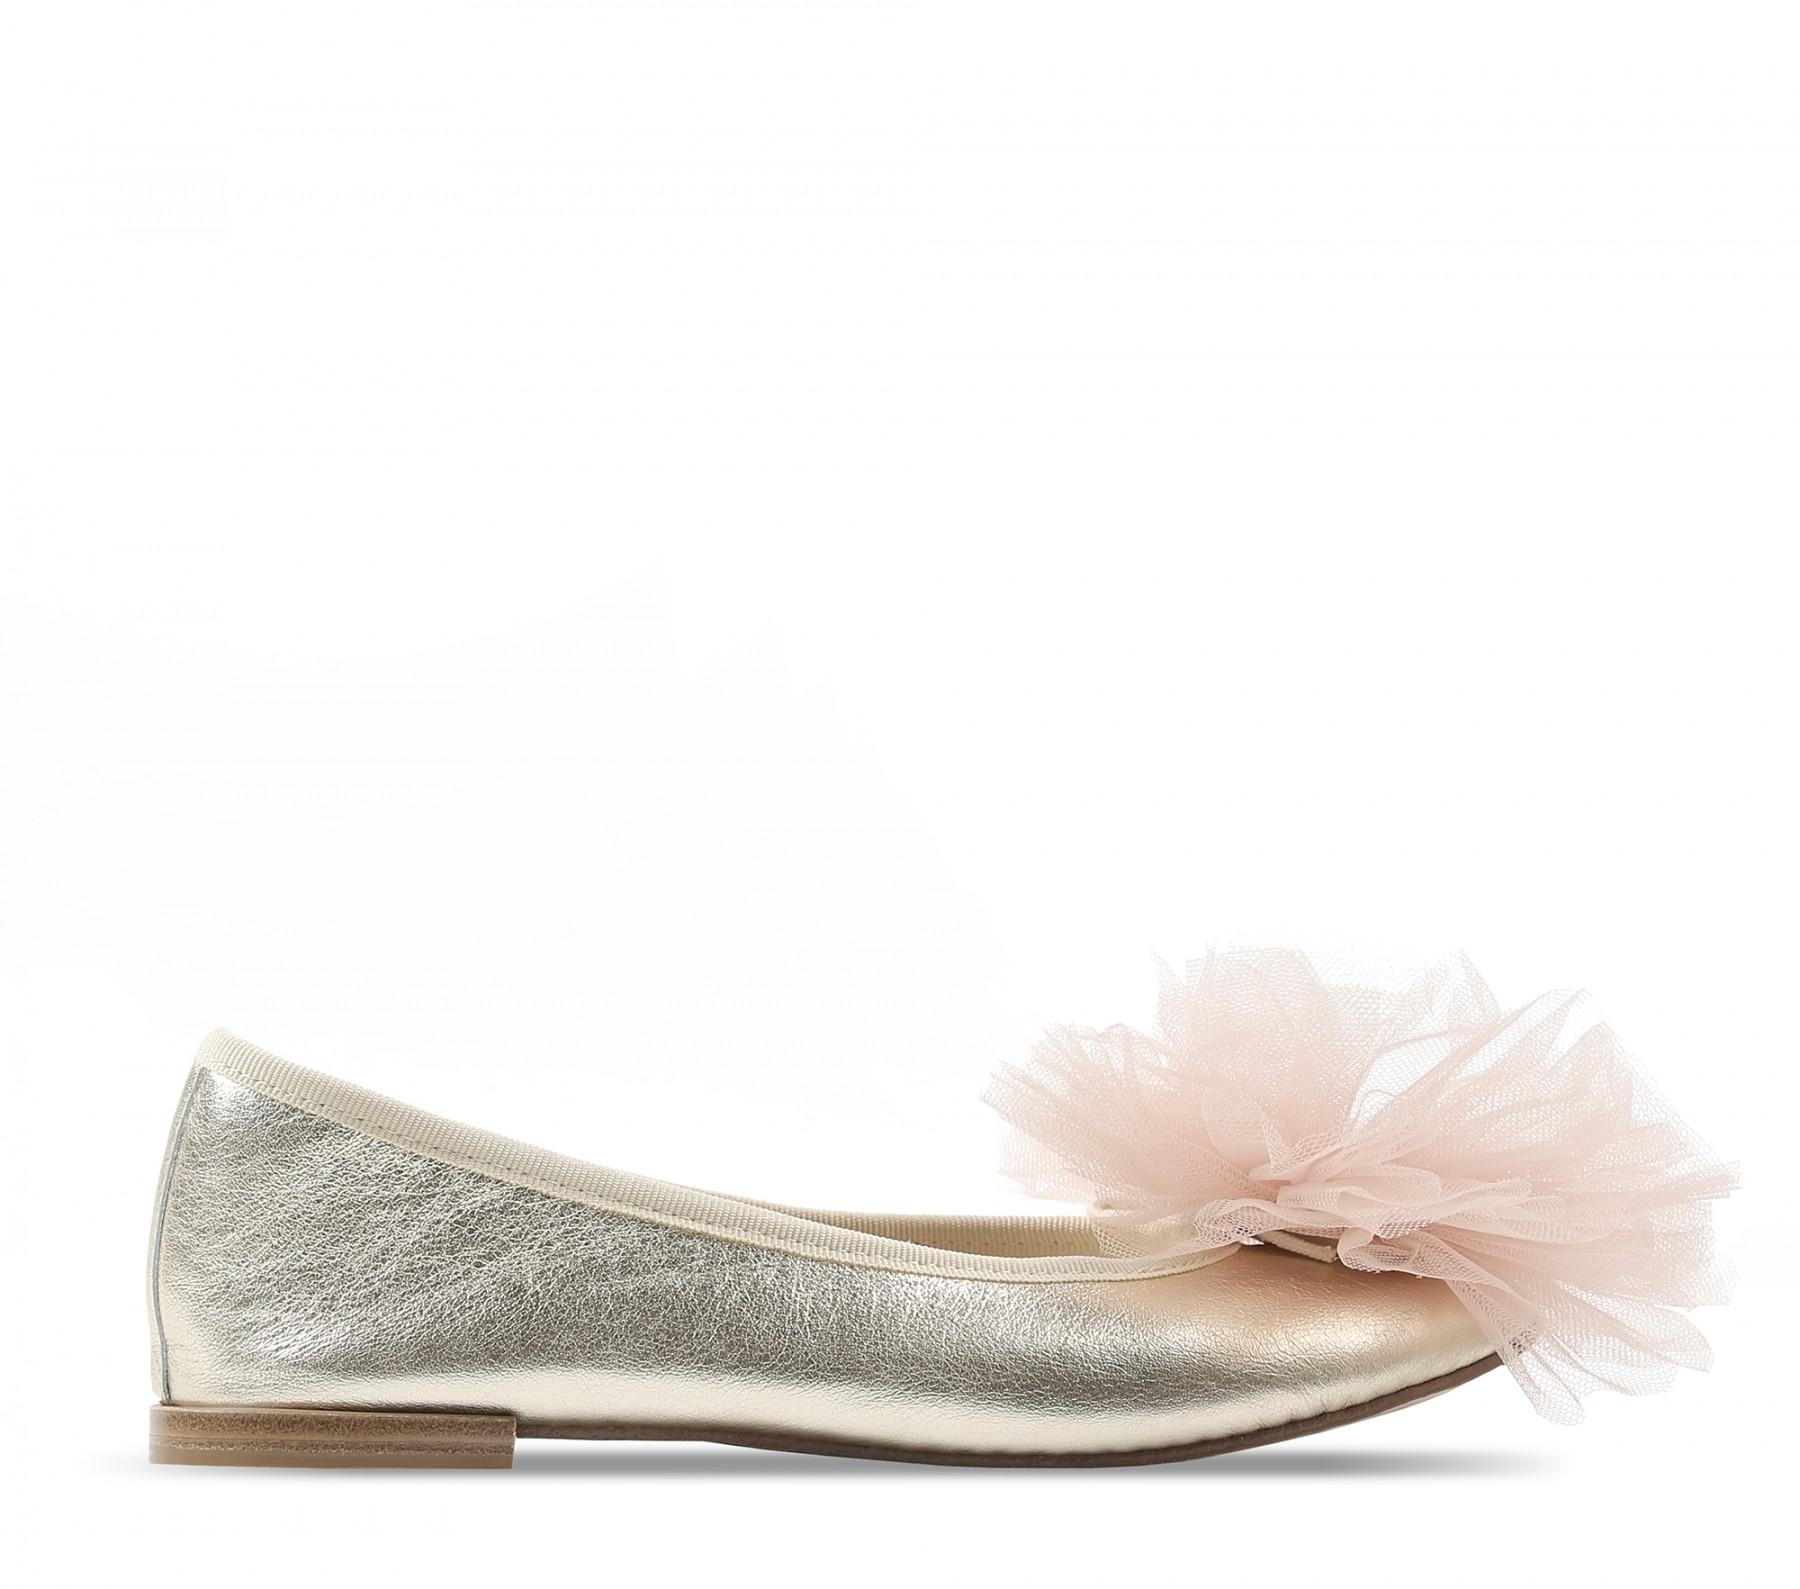 Repetto Tutu Cendrillon qkPi2W